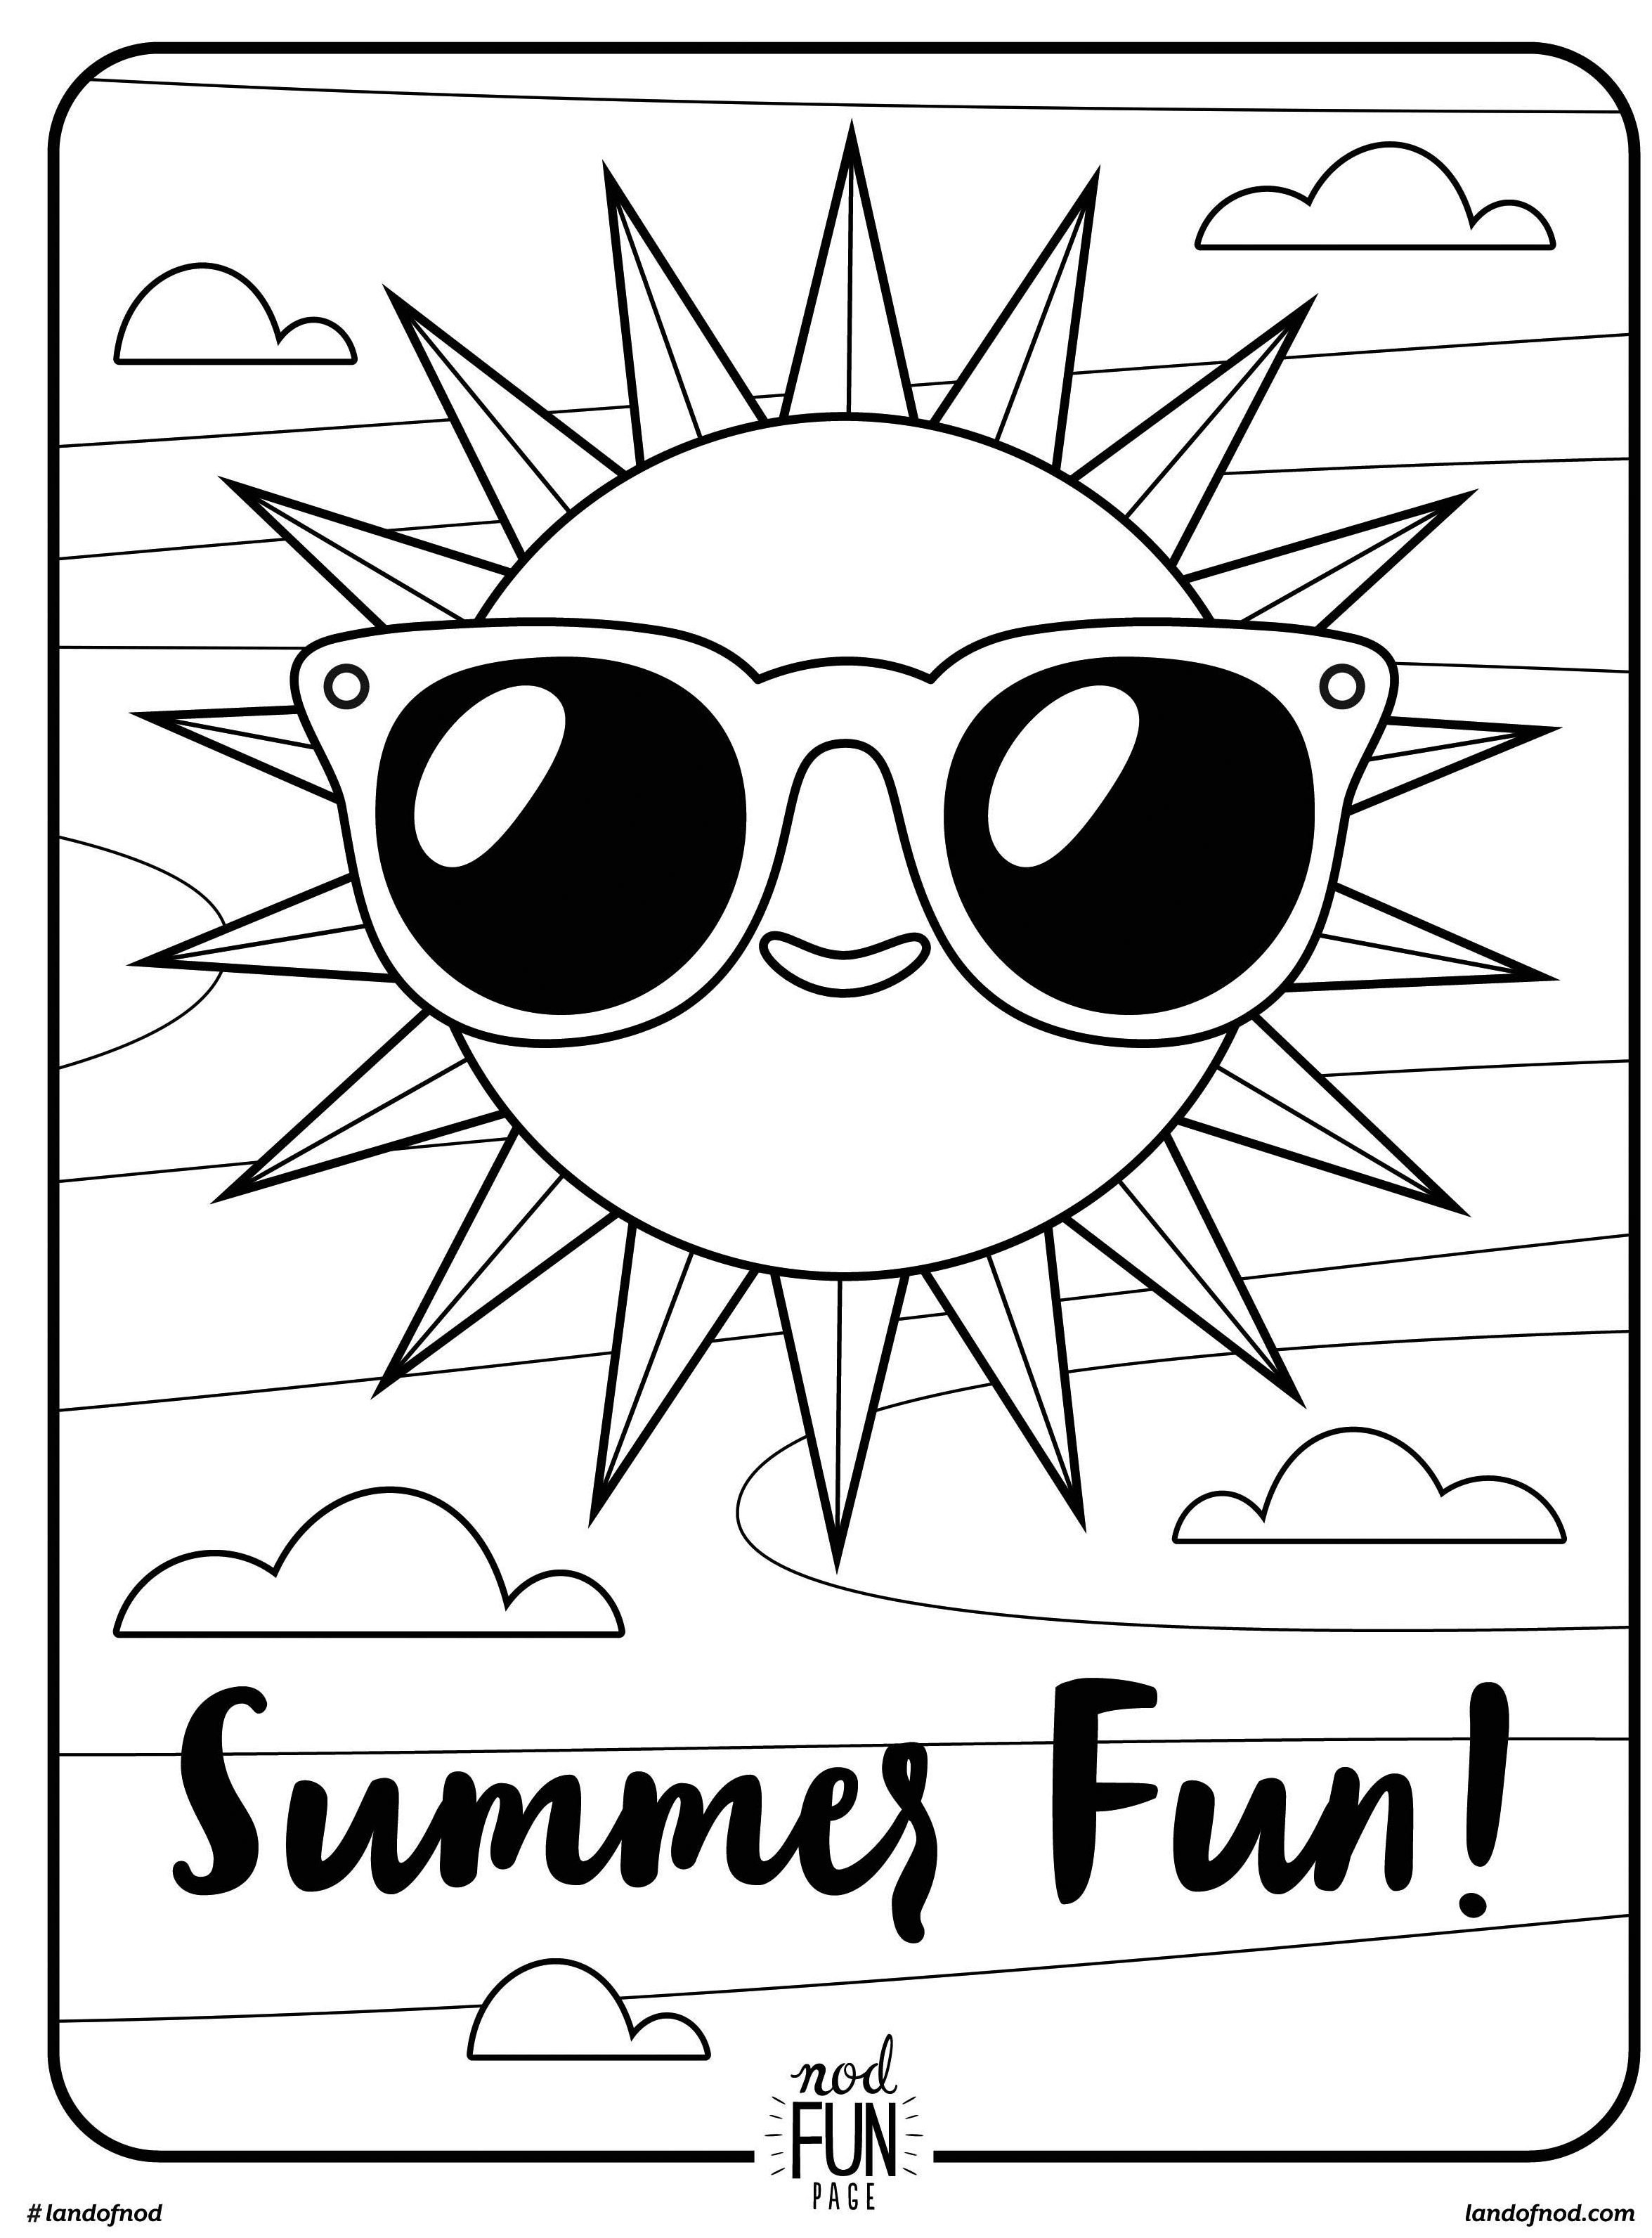 free printable coloring page summer fun - Fun Printable Coloring Pages